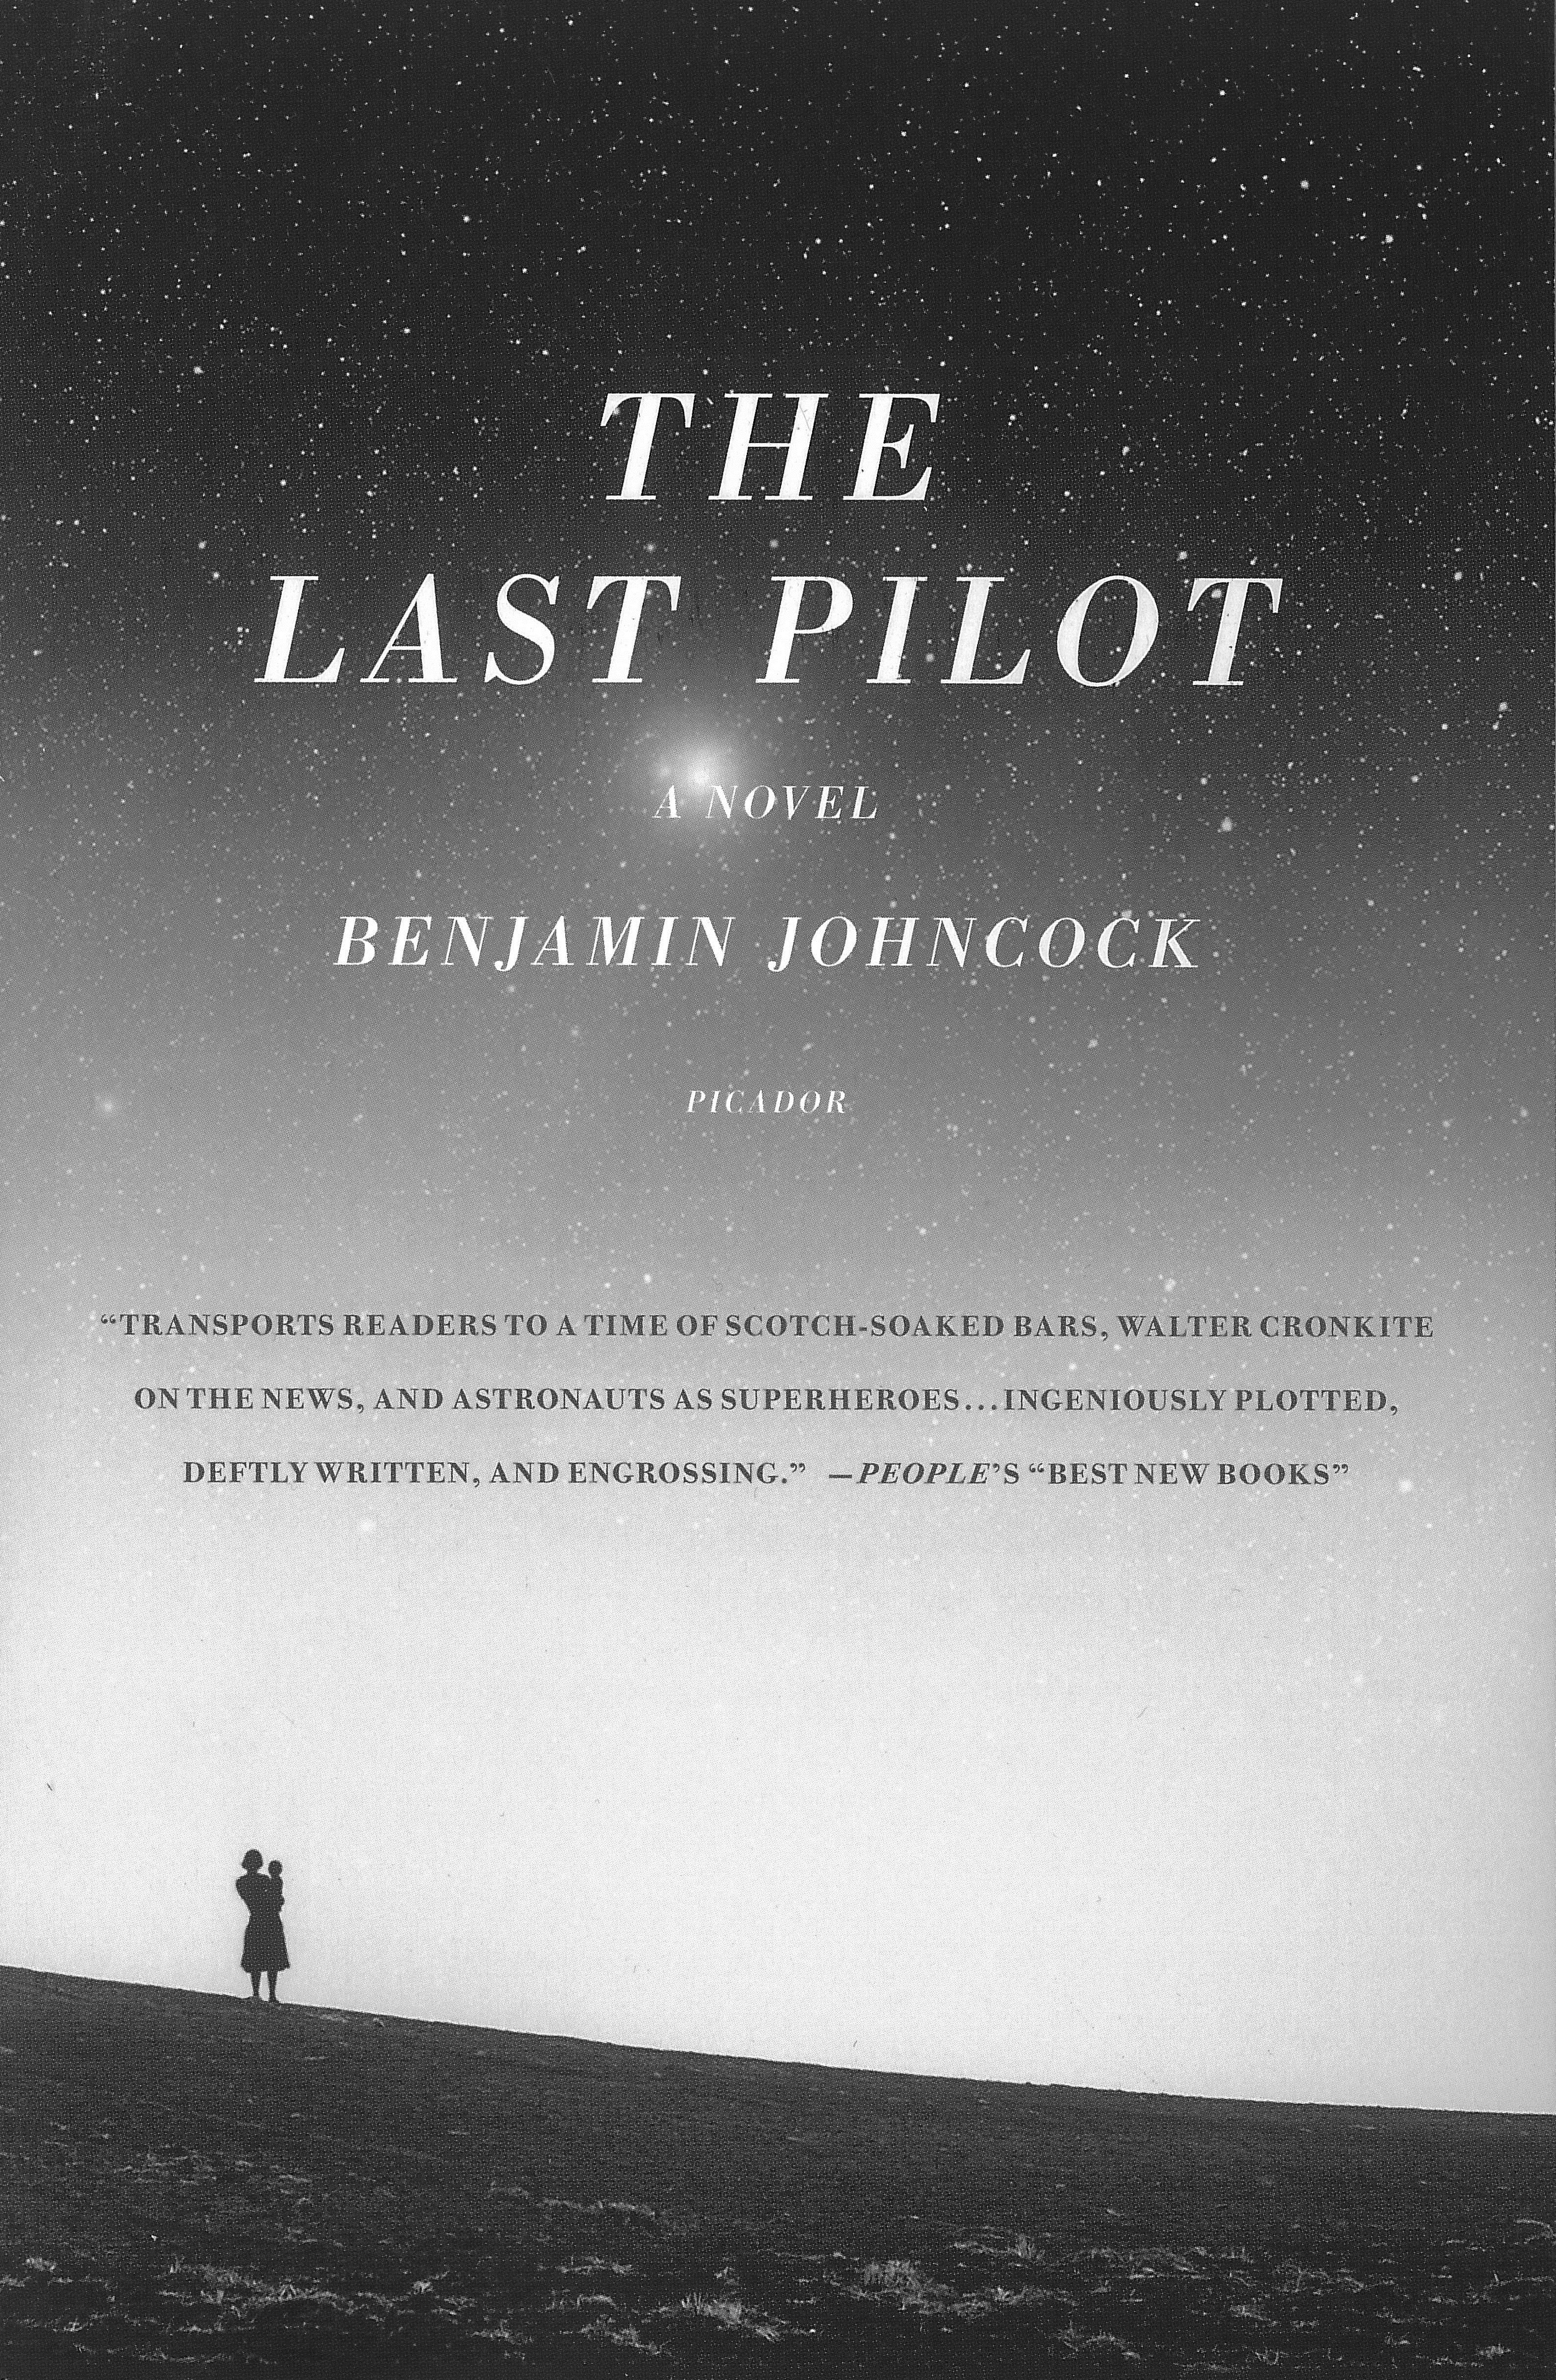 THE LAST PILOT  Literary Fiction, 315 pages Picador USA/Myriad UK, July 2015  Early October, 1947: Jim Harrison is a test pilot in the United States Air Force. When a terrible tragedy befalls his young family, Harrison's life grinds to a halt - so when he's offered a ticket to the moon, he takes it. Set against the backdrop of one of the most emotionally charged periods in modern history, THE LAST PILOT is a mesmerising story of loss and finding courage in the face of it.